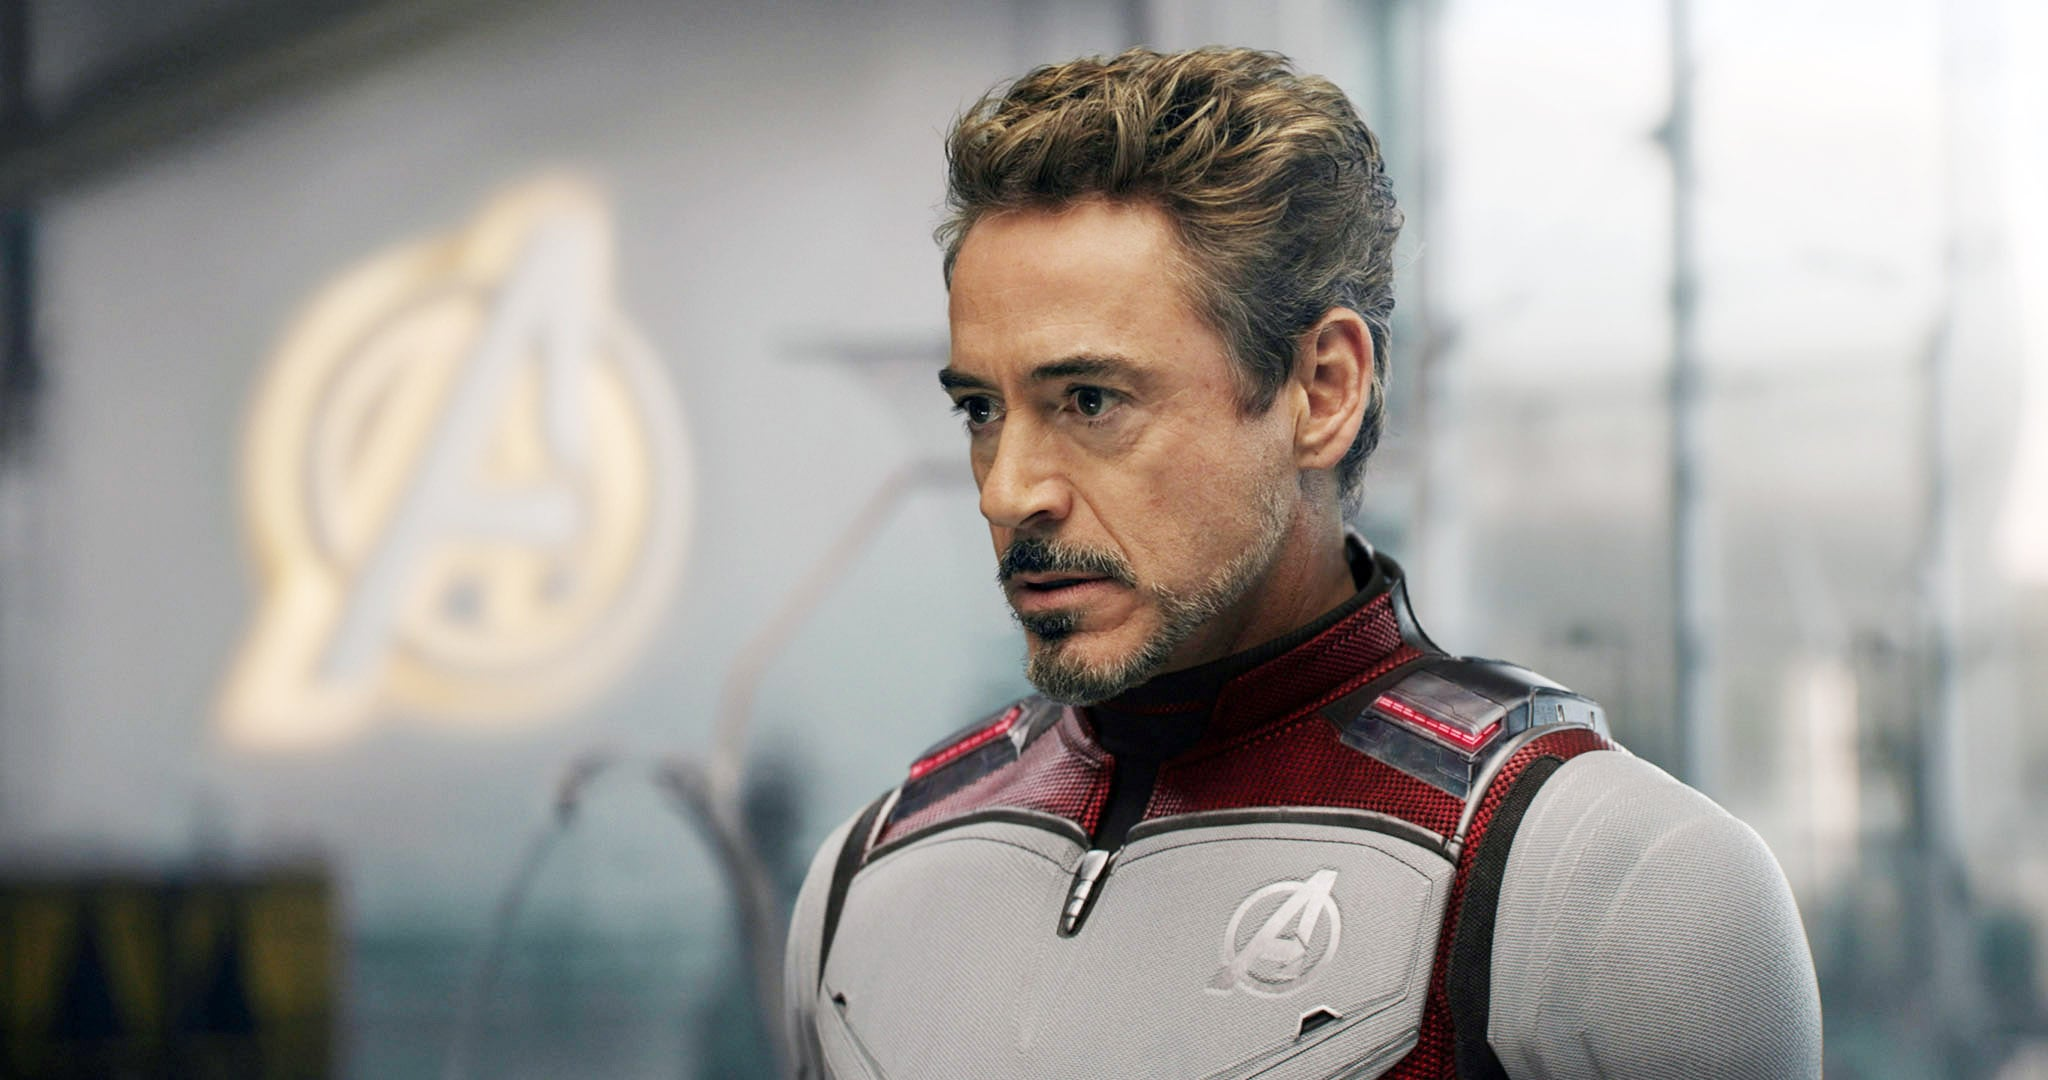 Tony Stark, about to time travel in Endgame.